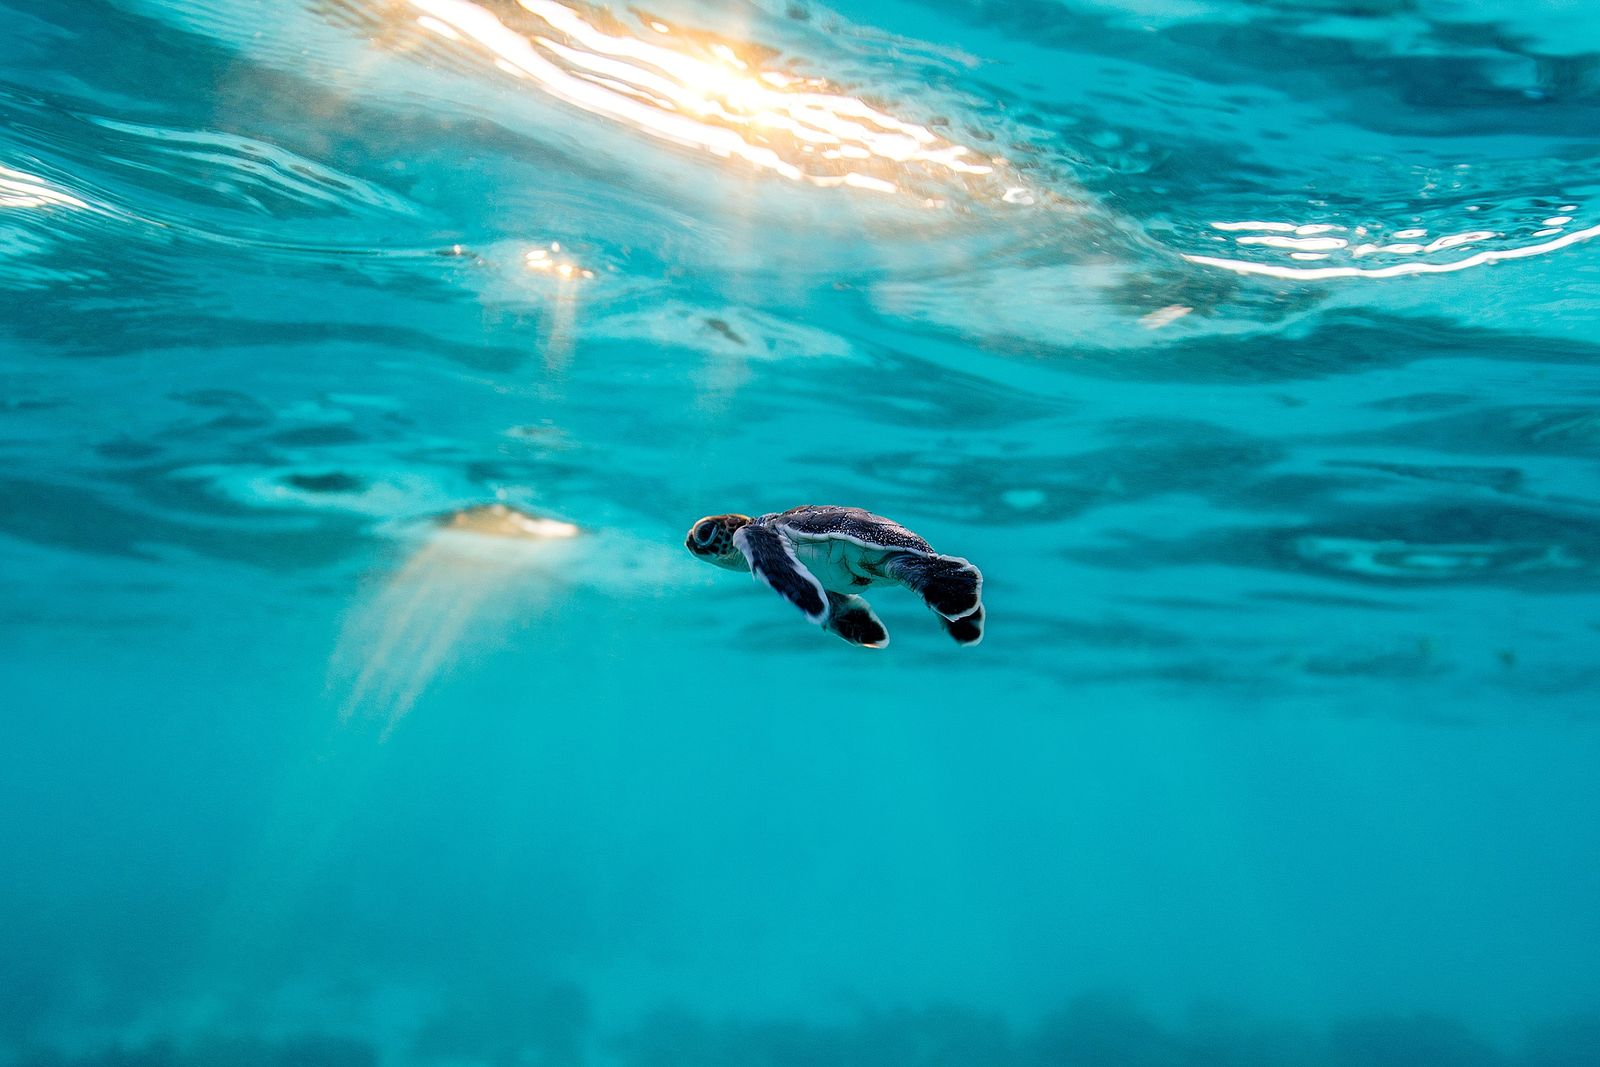 A vulnerable green sea turtle hatchling swims through dappled sunlight in the ocean shallows after hatching ...